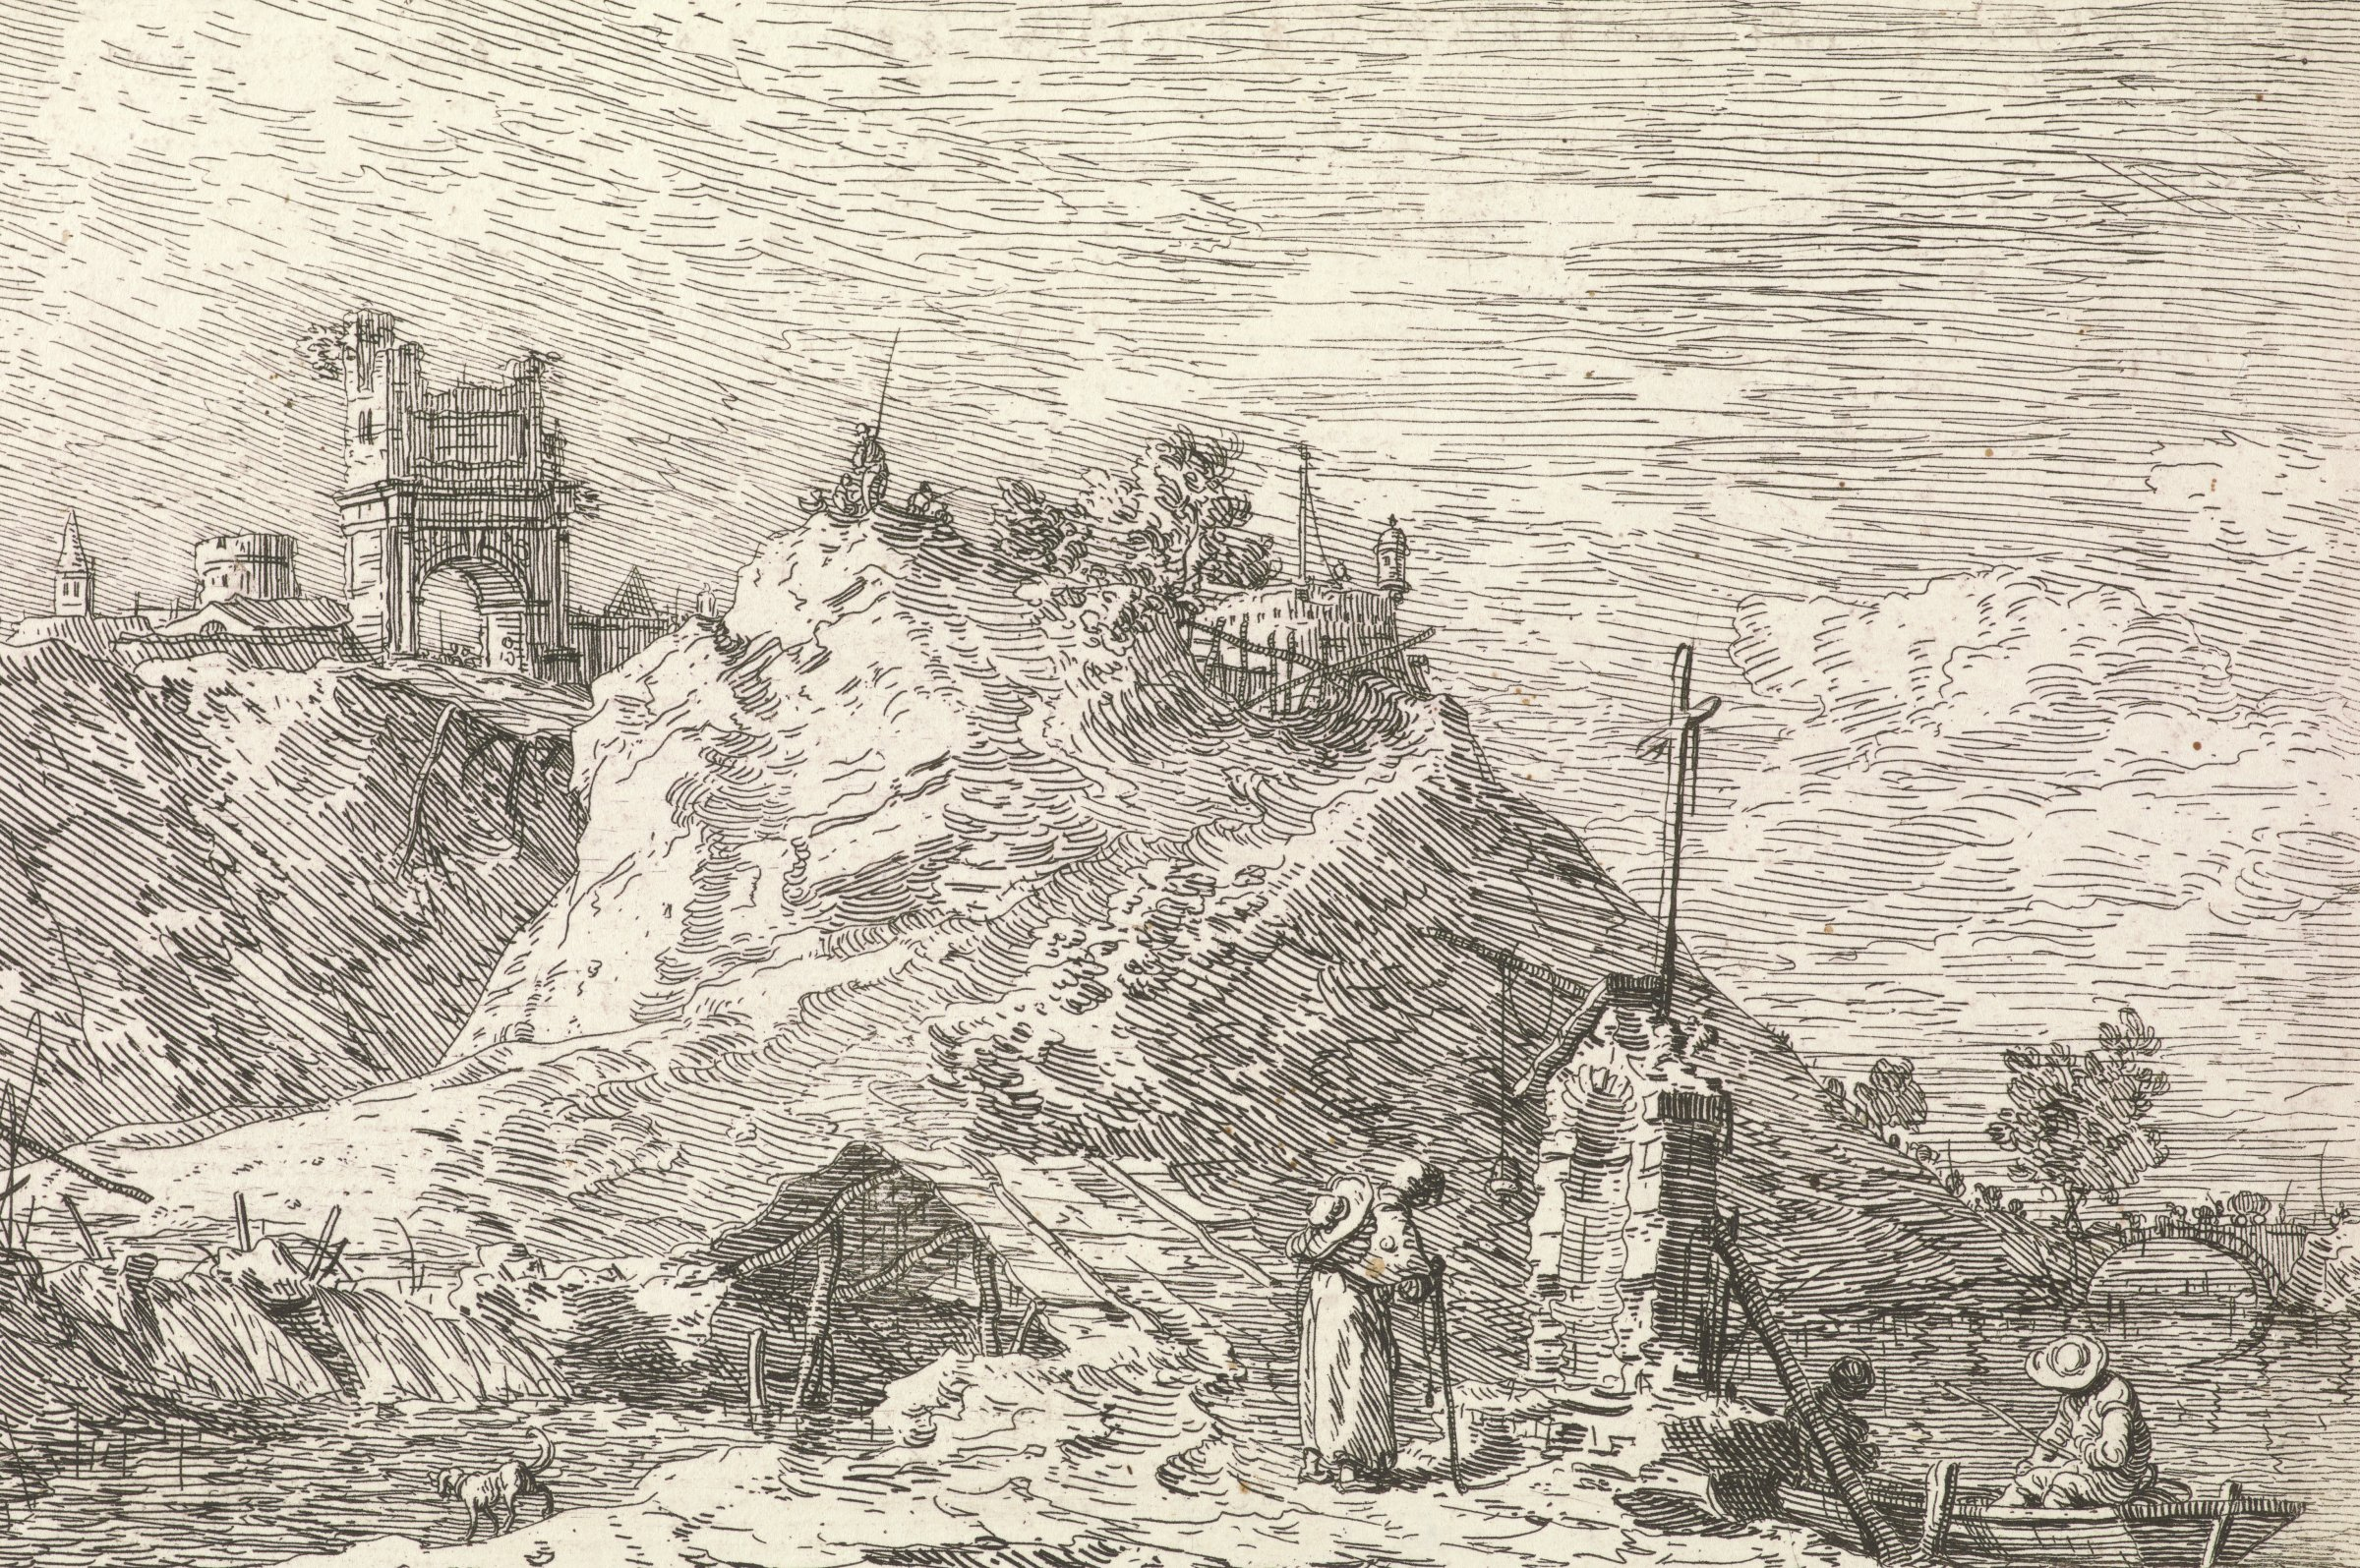 A pilgrim in the center foreground stands before a roadside altar. A boat with two fisherman sits in the river on the right. A mountain with an architectural structure and figures stands in the middle ground, and an archway to a city is seen in the distance.